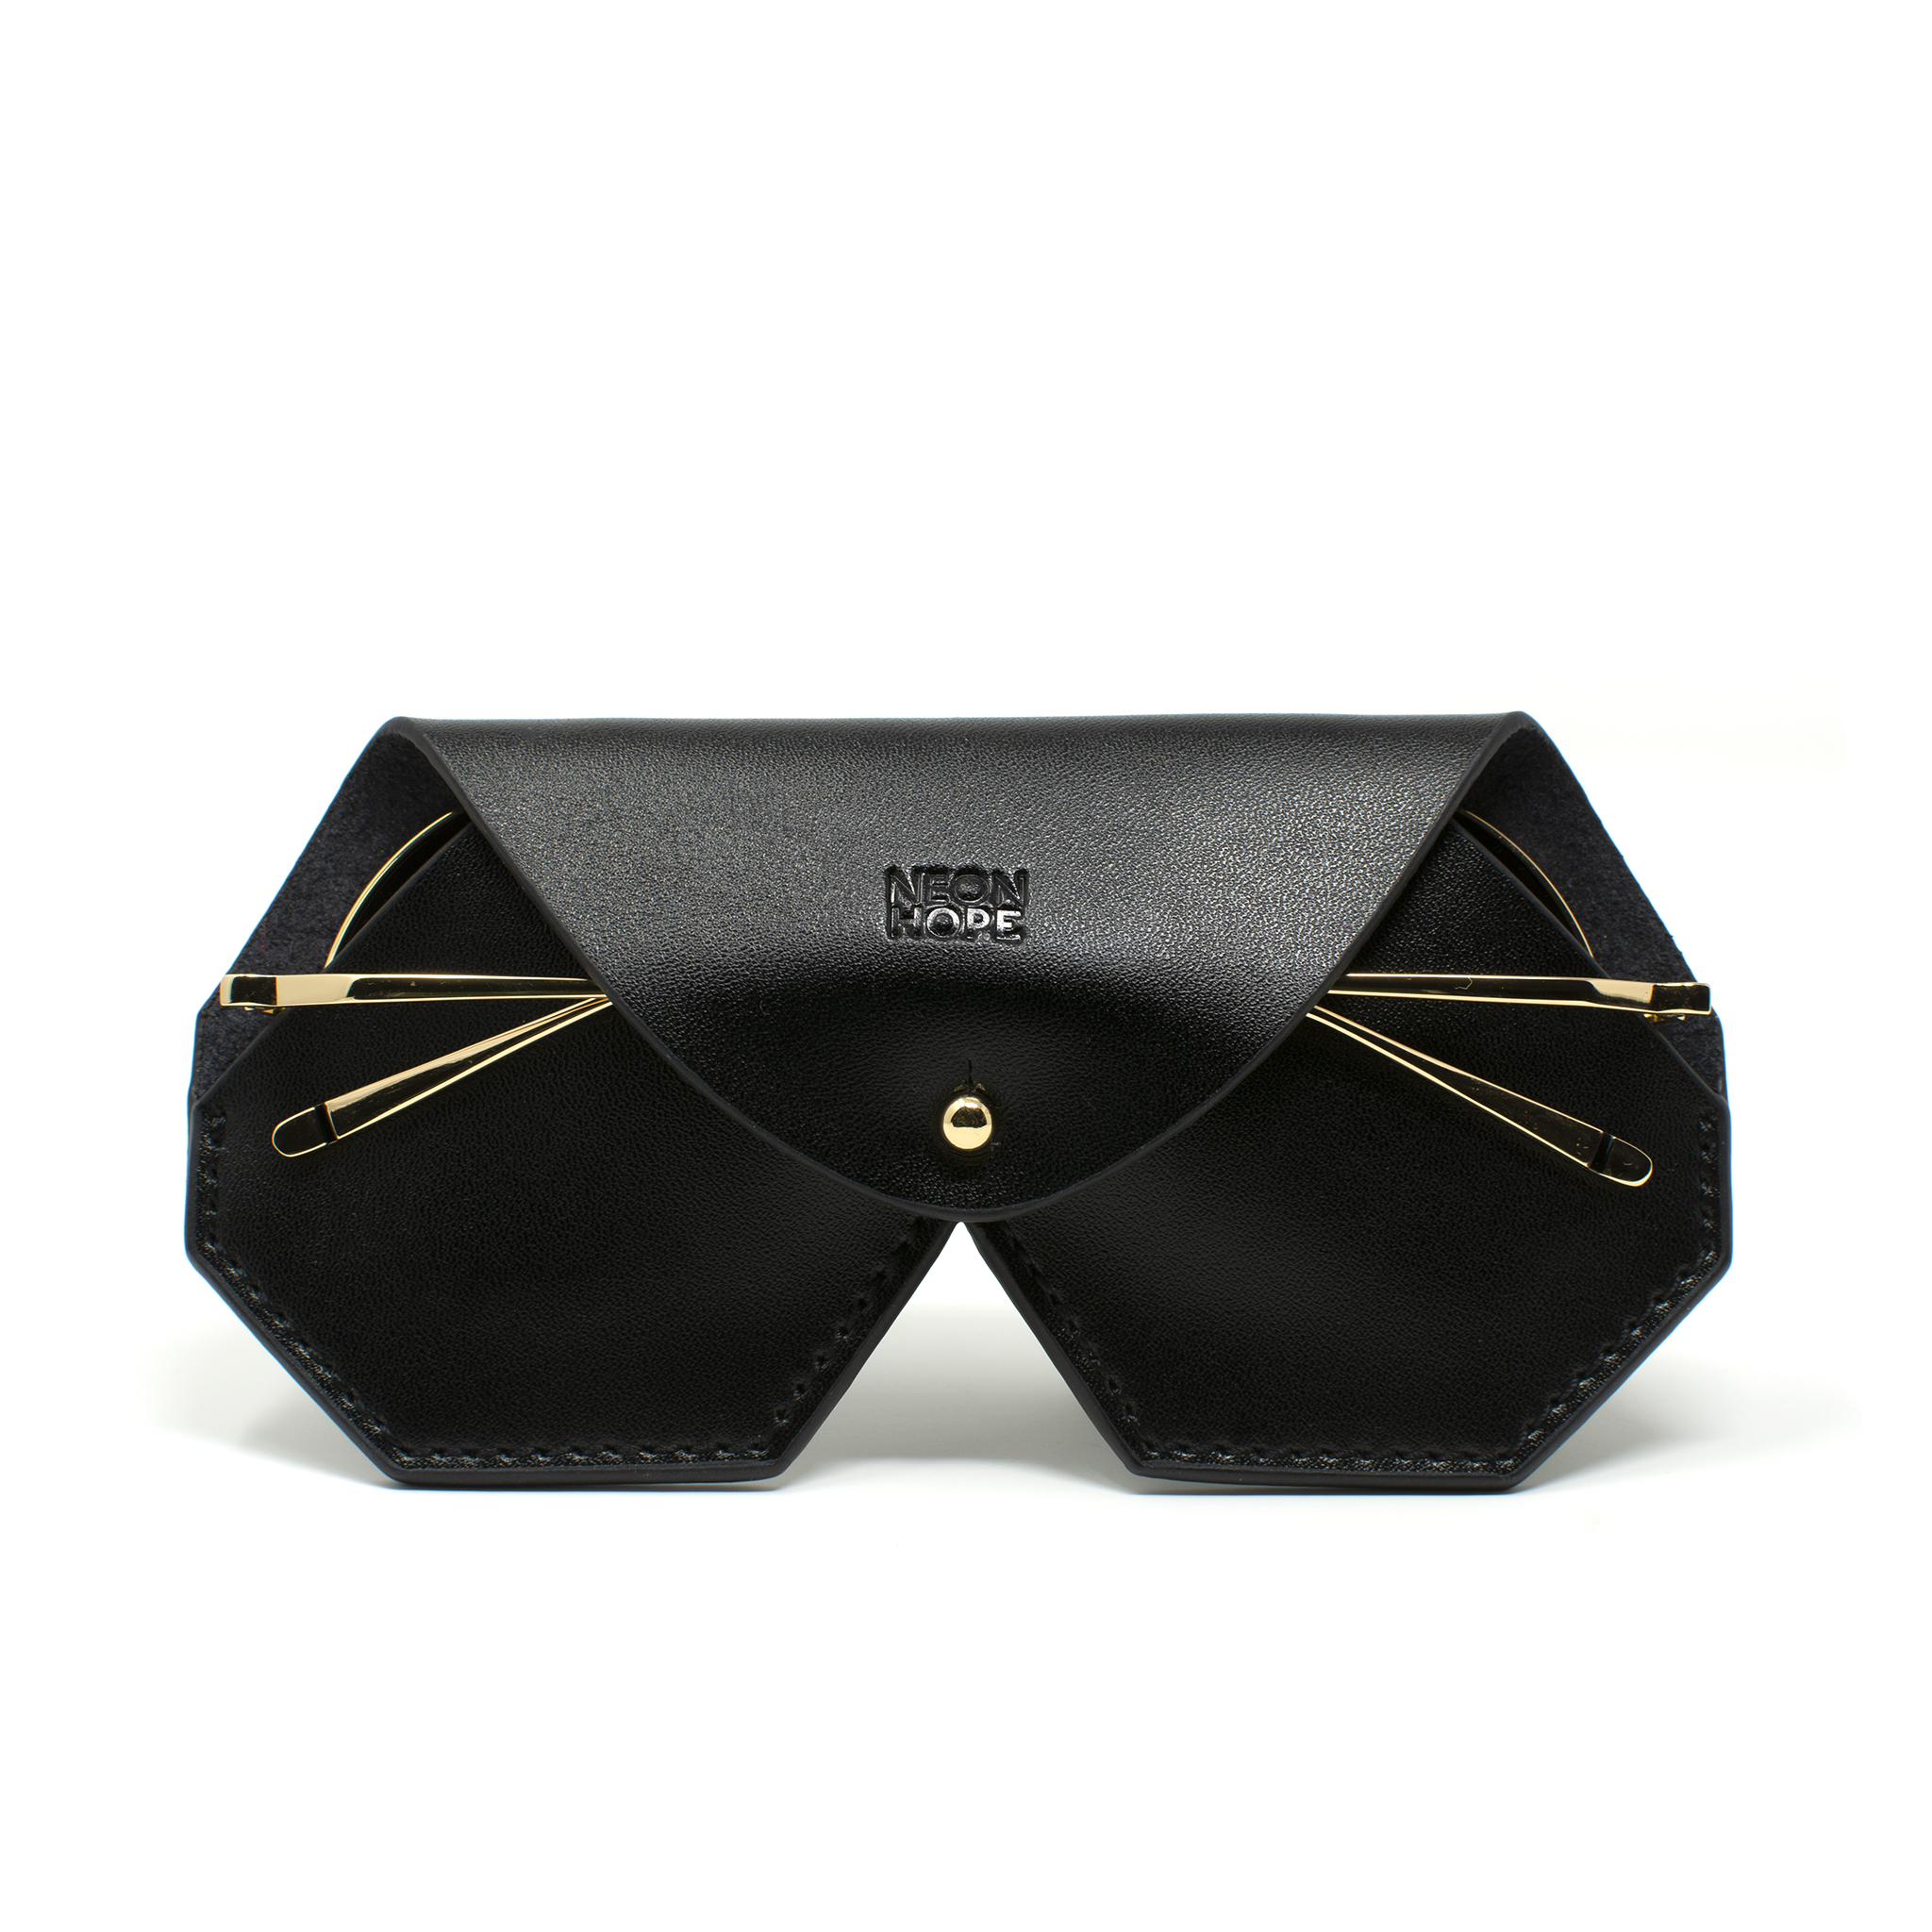 Leather glasses case - Black by Neon Hope on curated-crowd.com